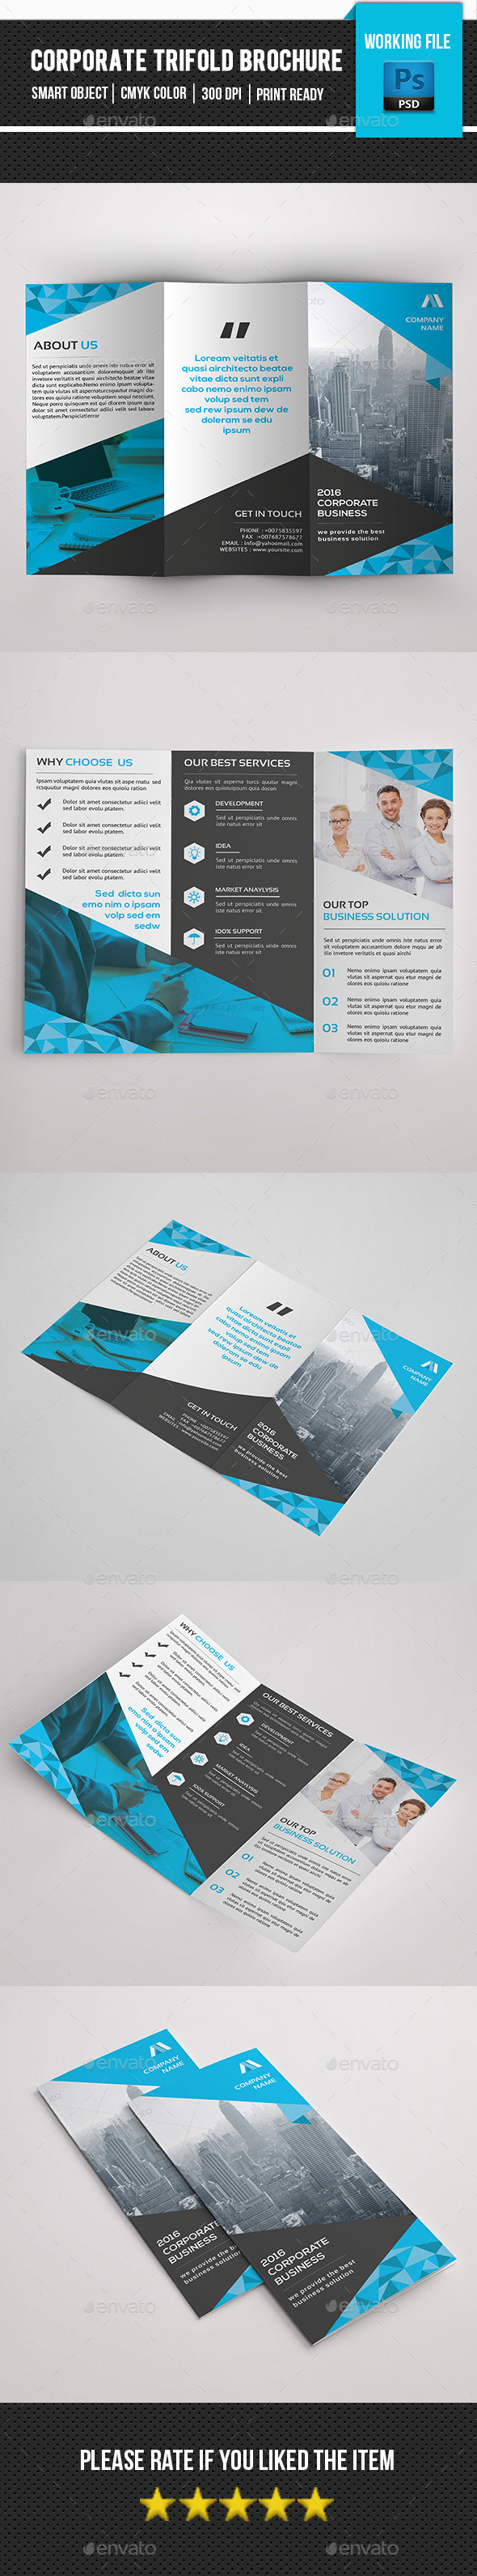 Corporate Trifold Brochure-V276 - Corporate Brochures